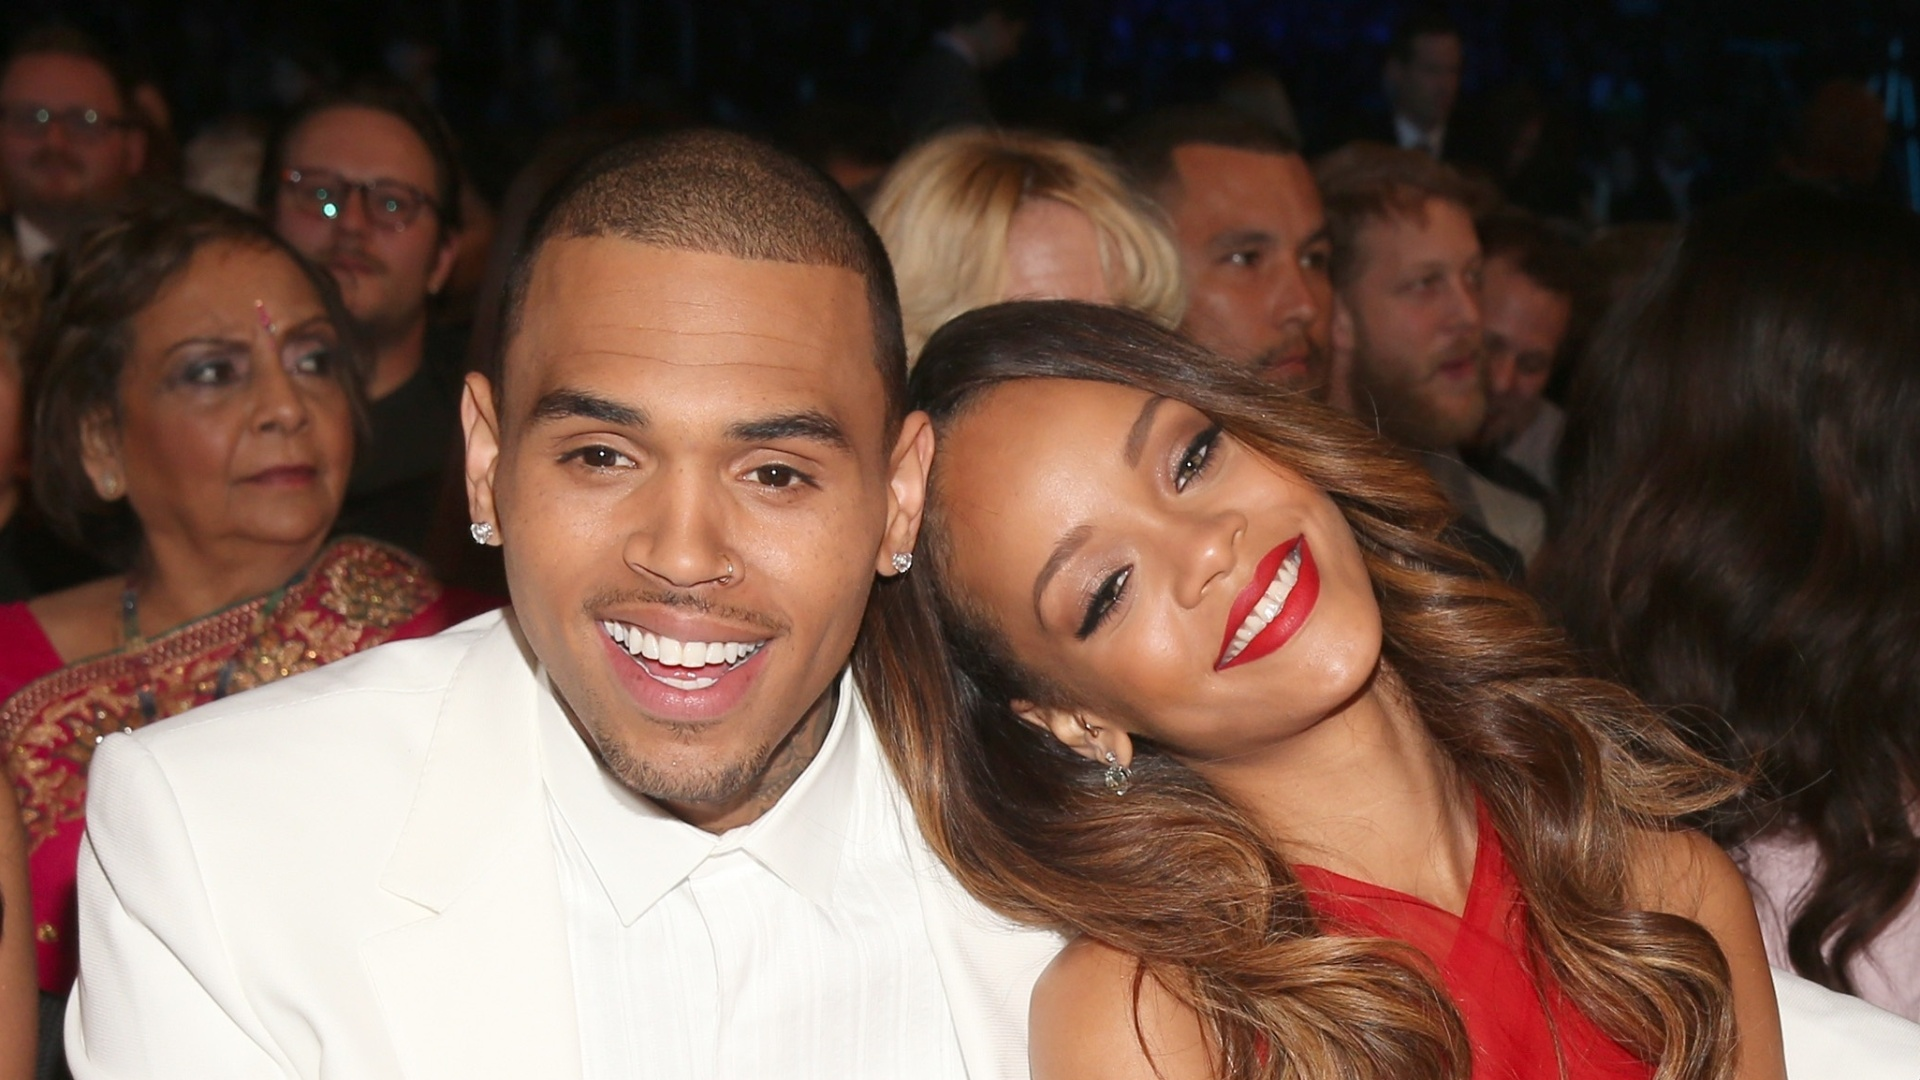 10.fev.2013 - Chris Brown e Rihanna posam juntos durante premiação do Grammy